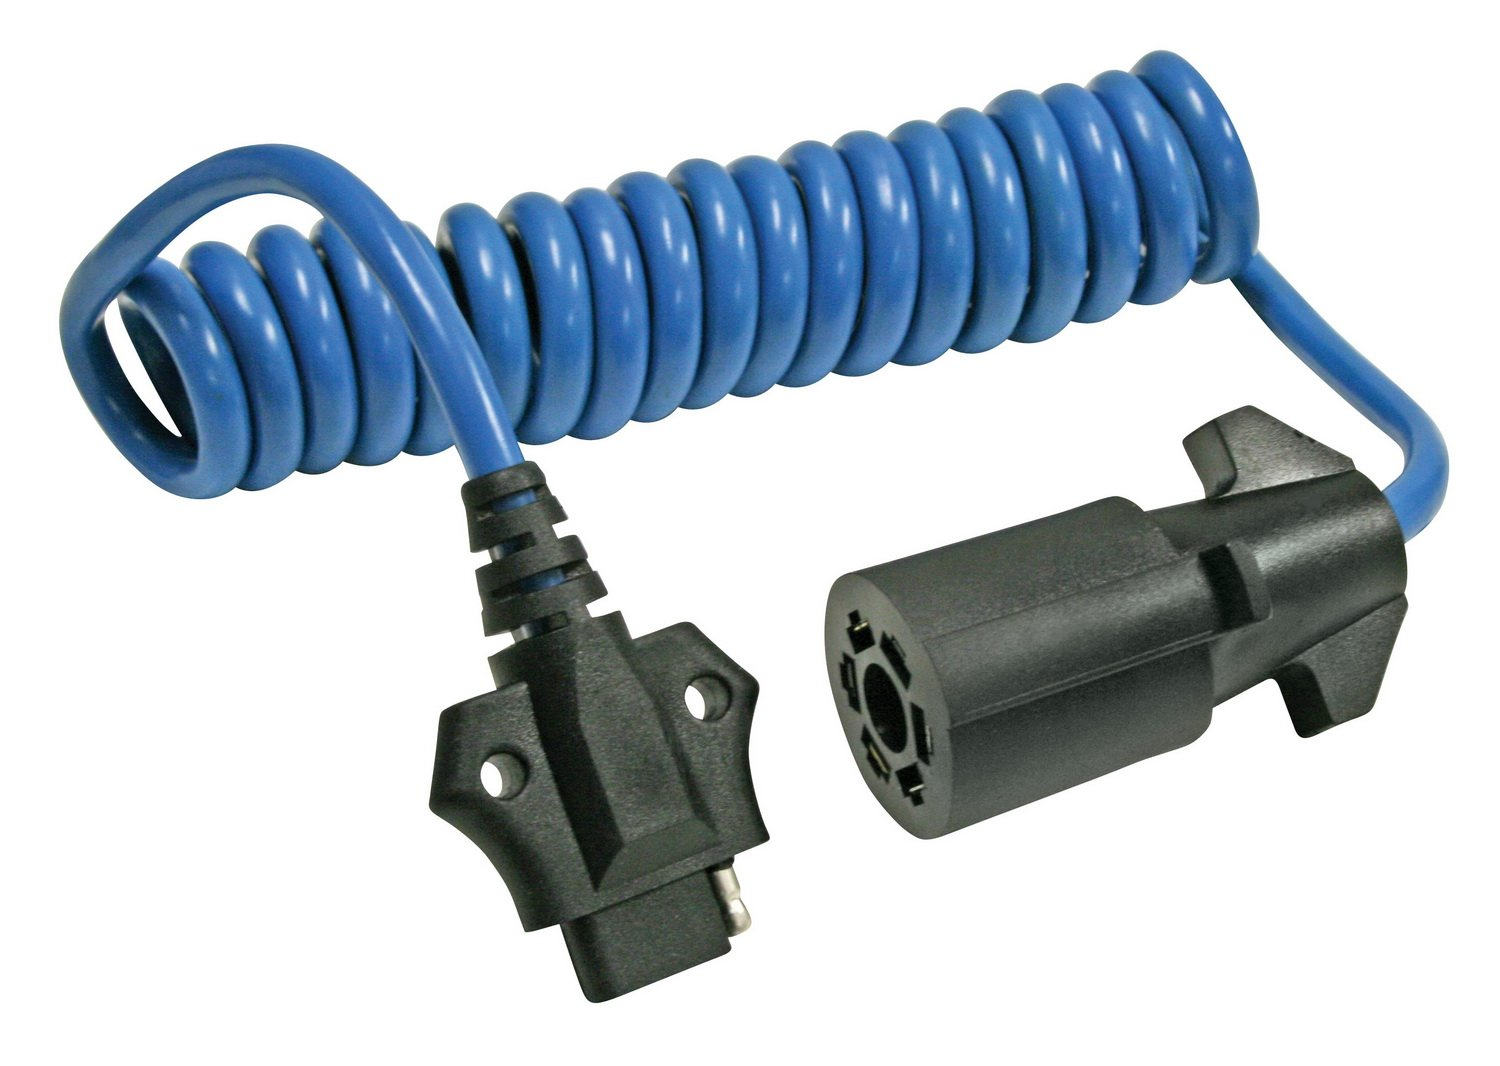 Reese Towpower 74686 Coiled 7-Way Blade to 4-Flat Adapter by Reese Towpower